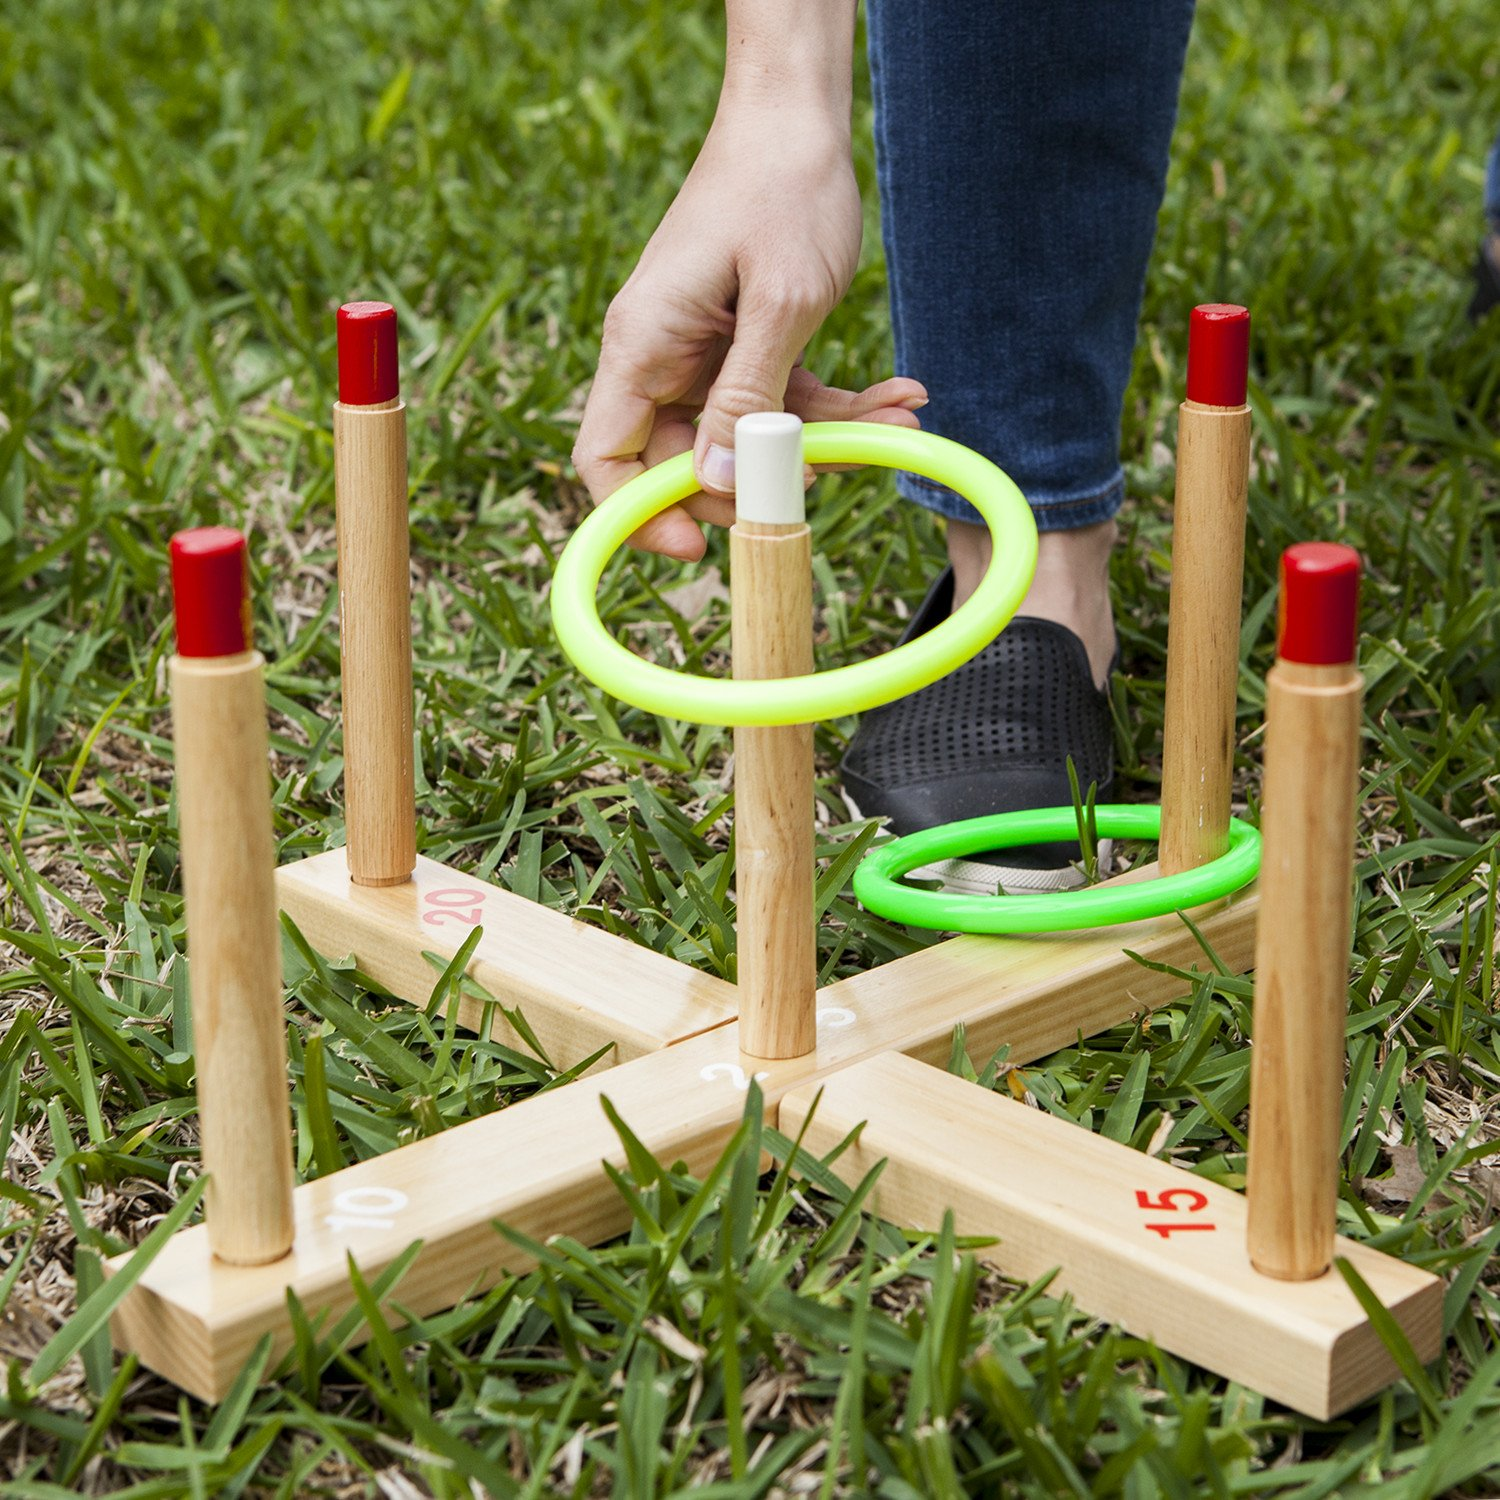 amazon com champion sports classic wooden ring toss game